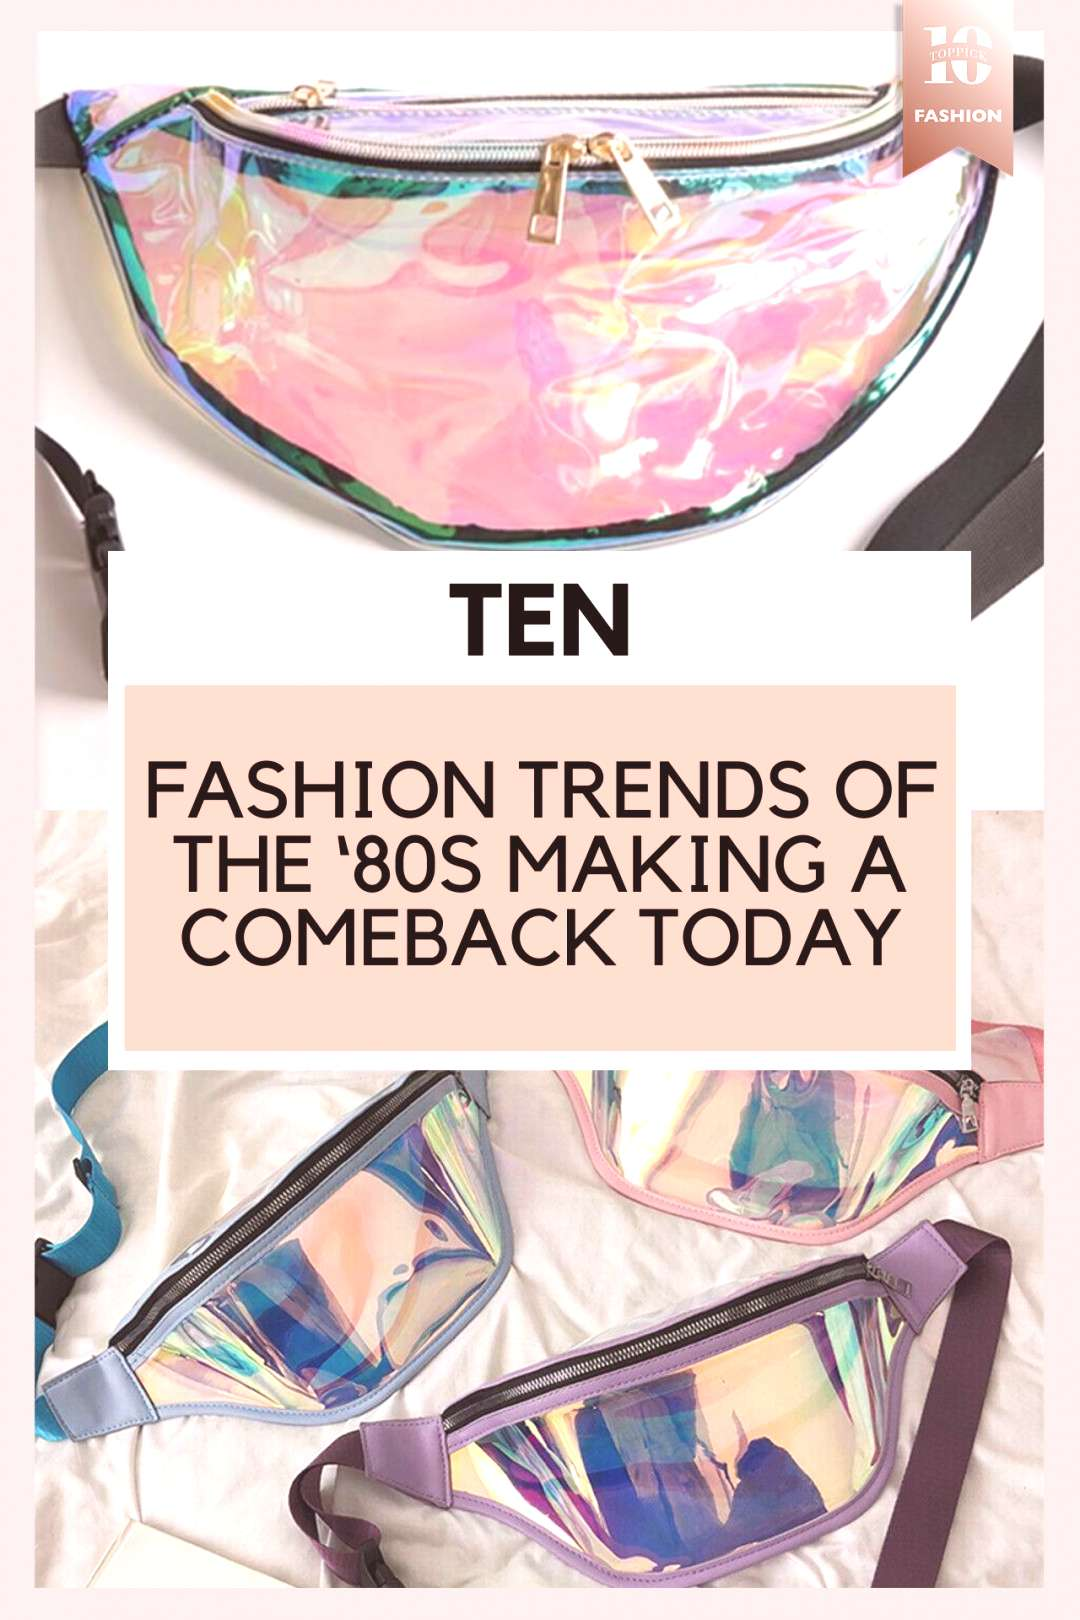 10 Fashion Trends of the '80s Making a Comeback Today